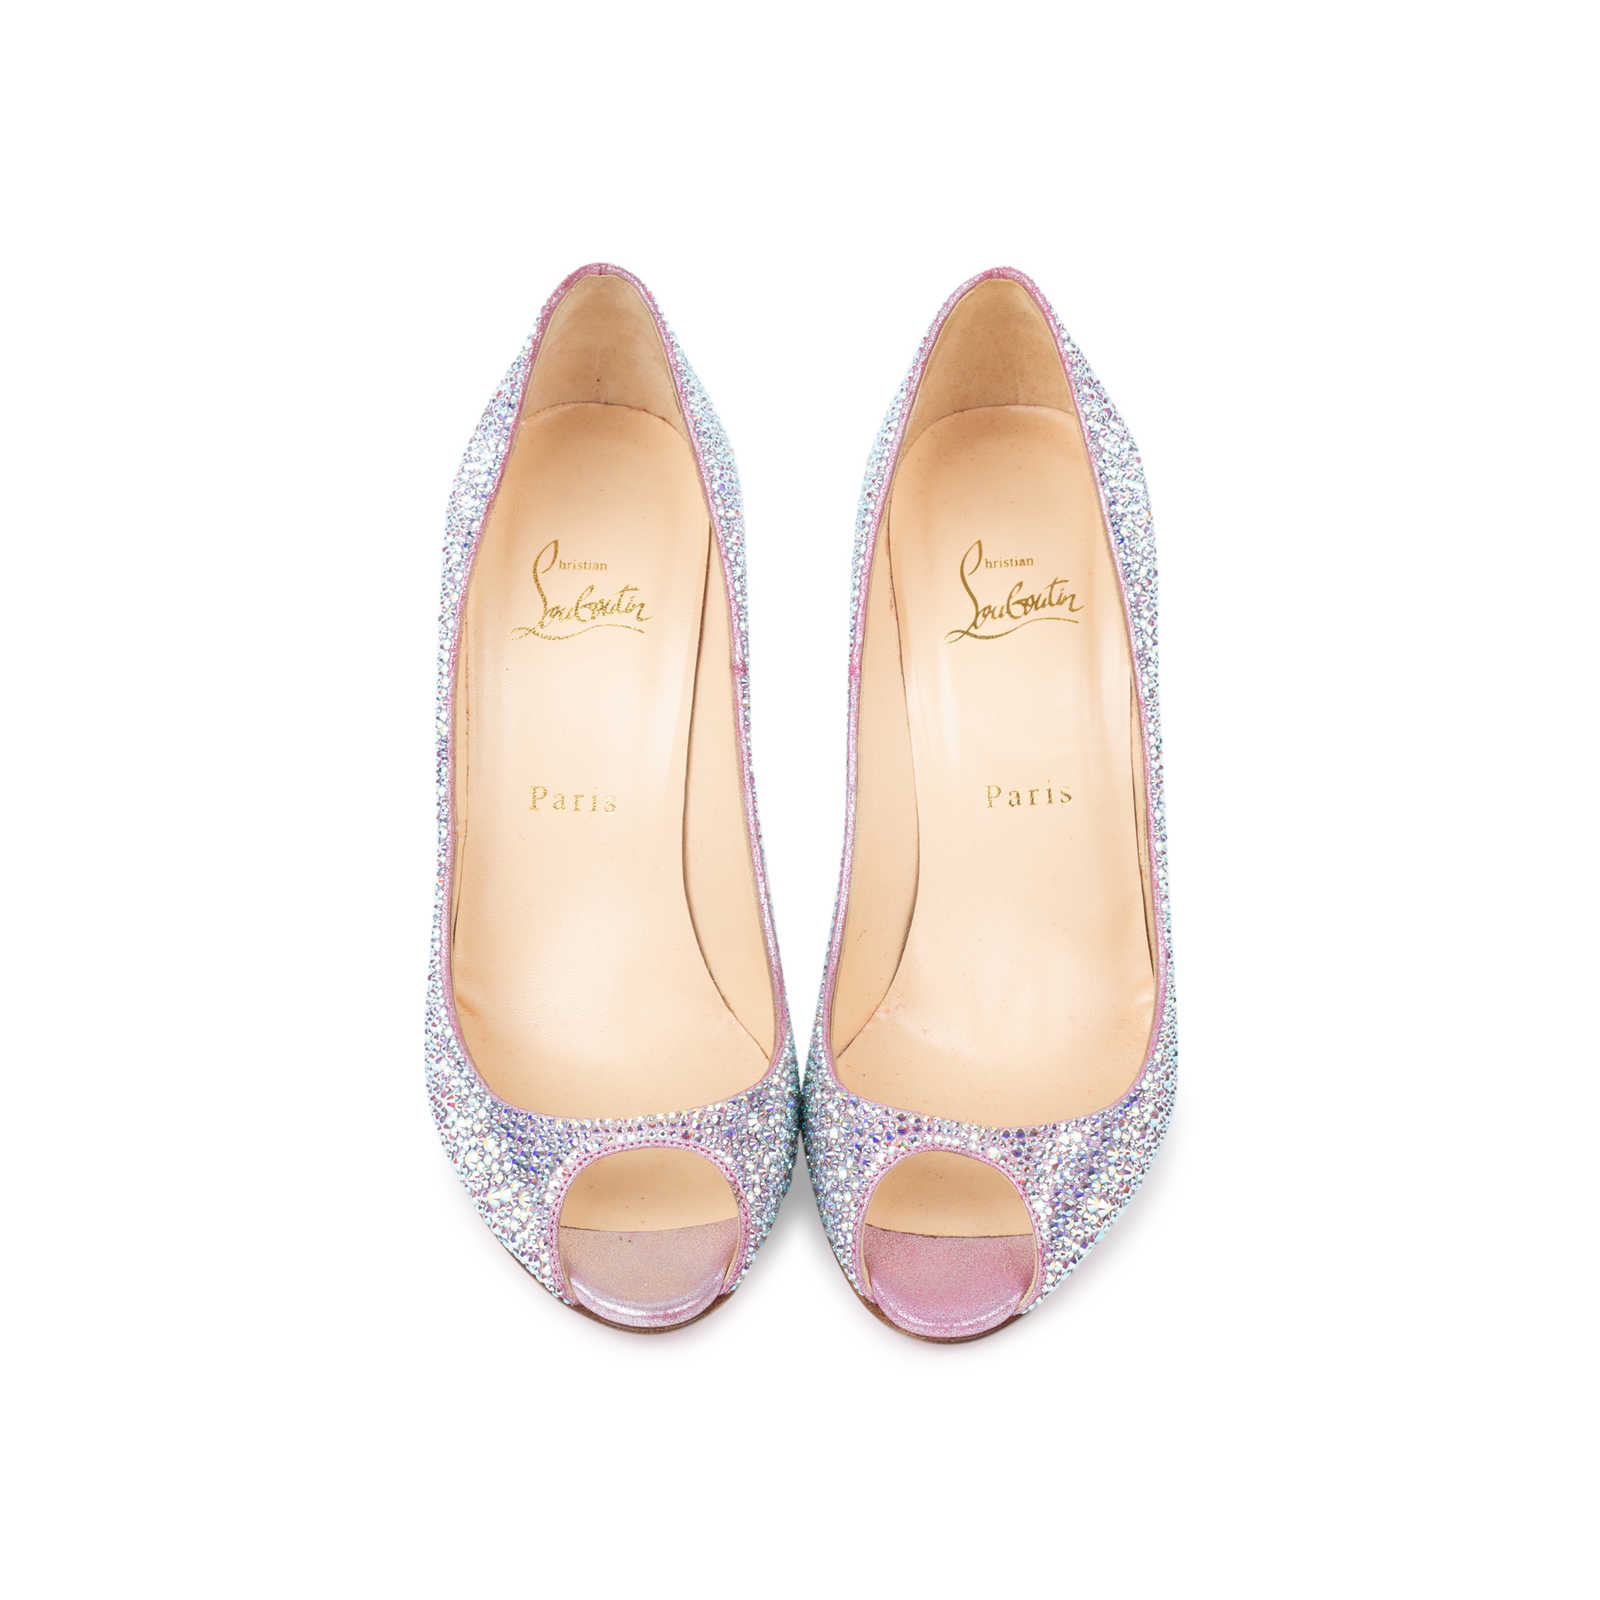 new style c5dac 9c085 Authentic Second Hand Christian Louboutin Sexy Strass ...